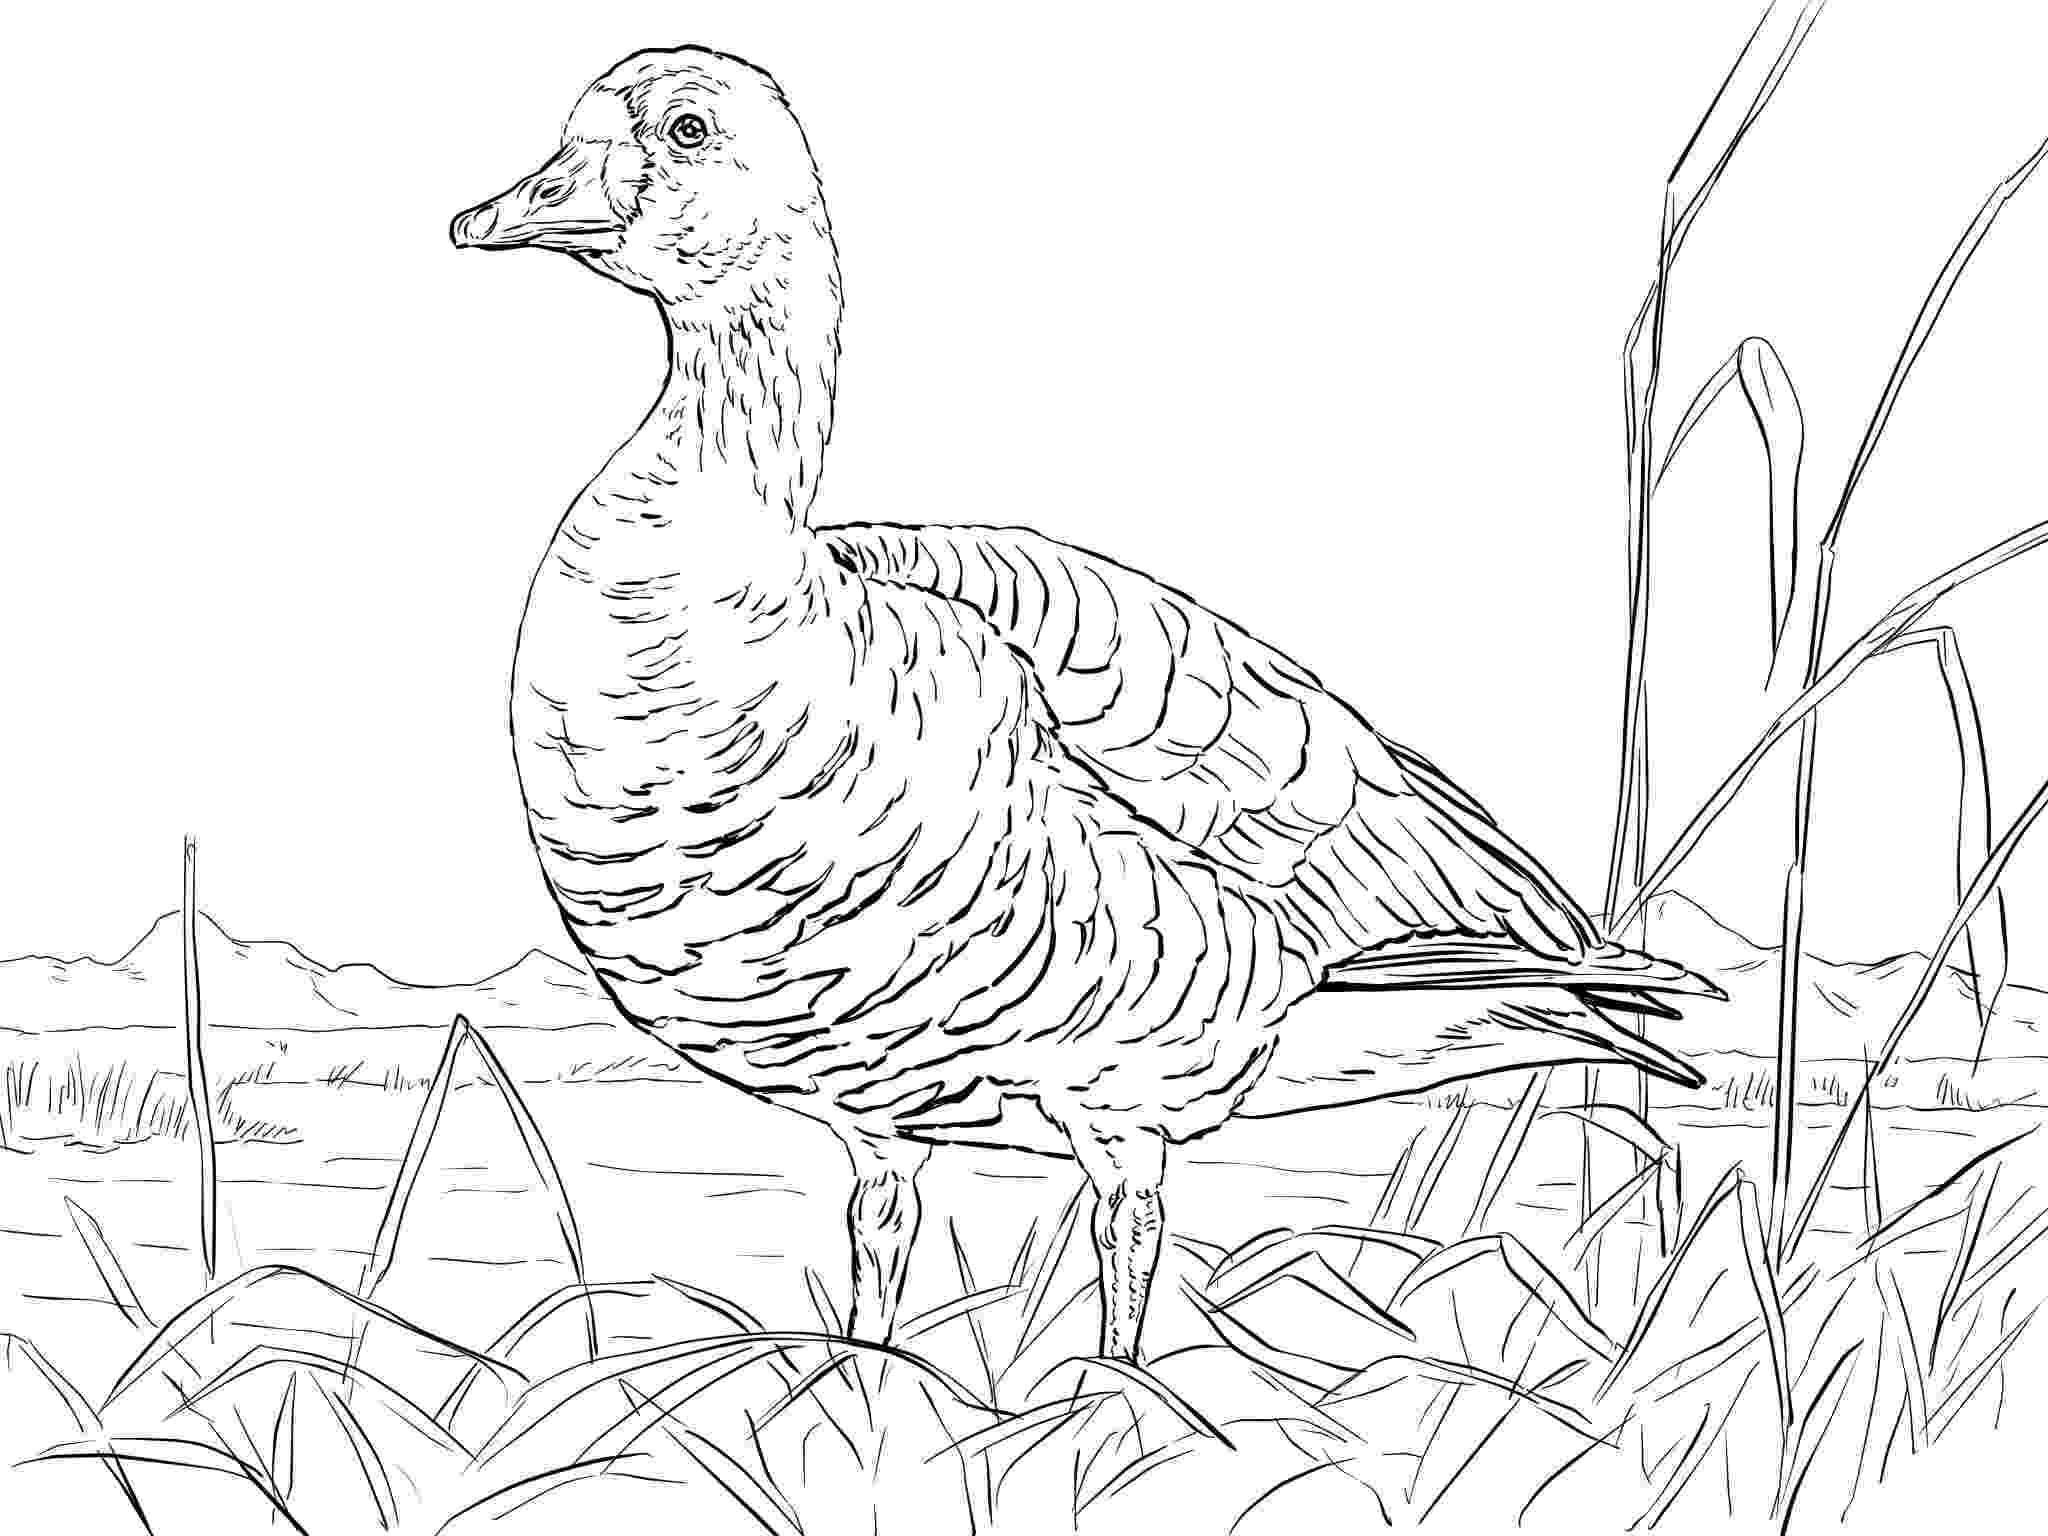 goose coloring page goose animal coloring pages to kids page goose coloring 1 2